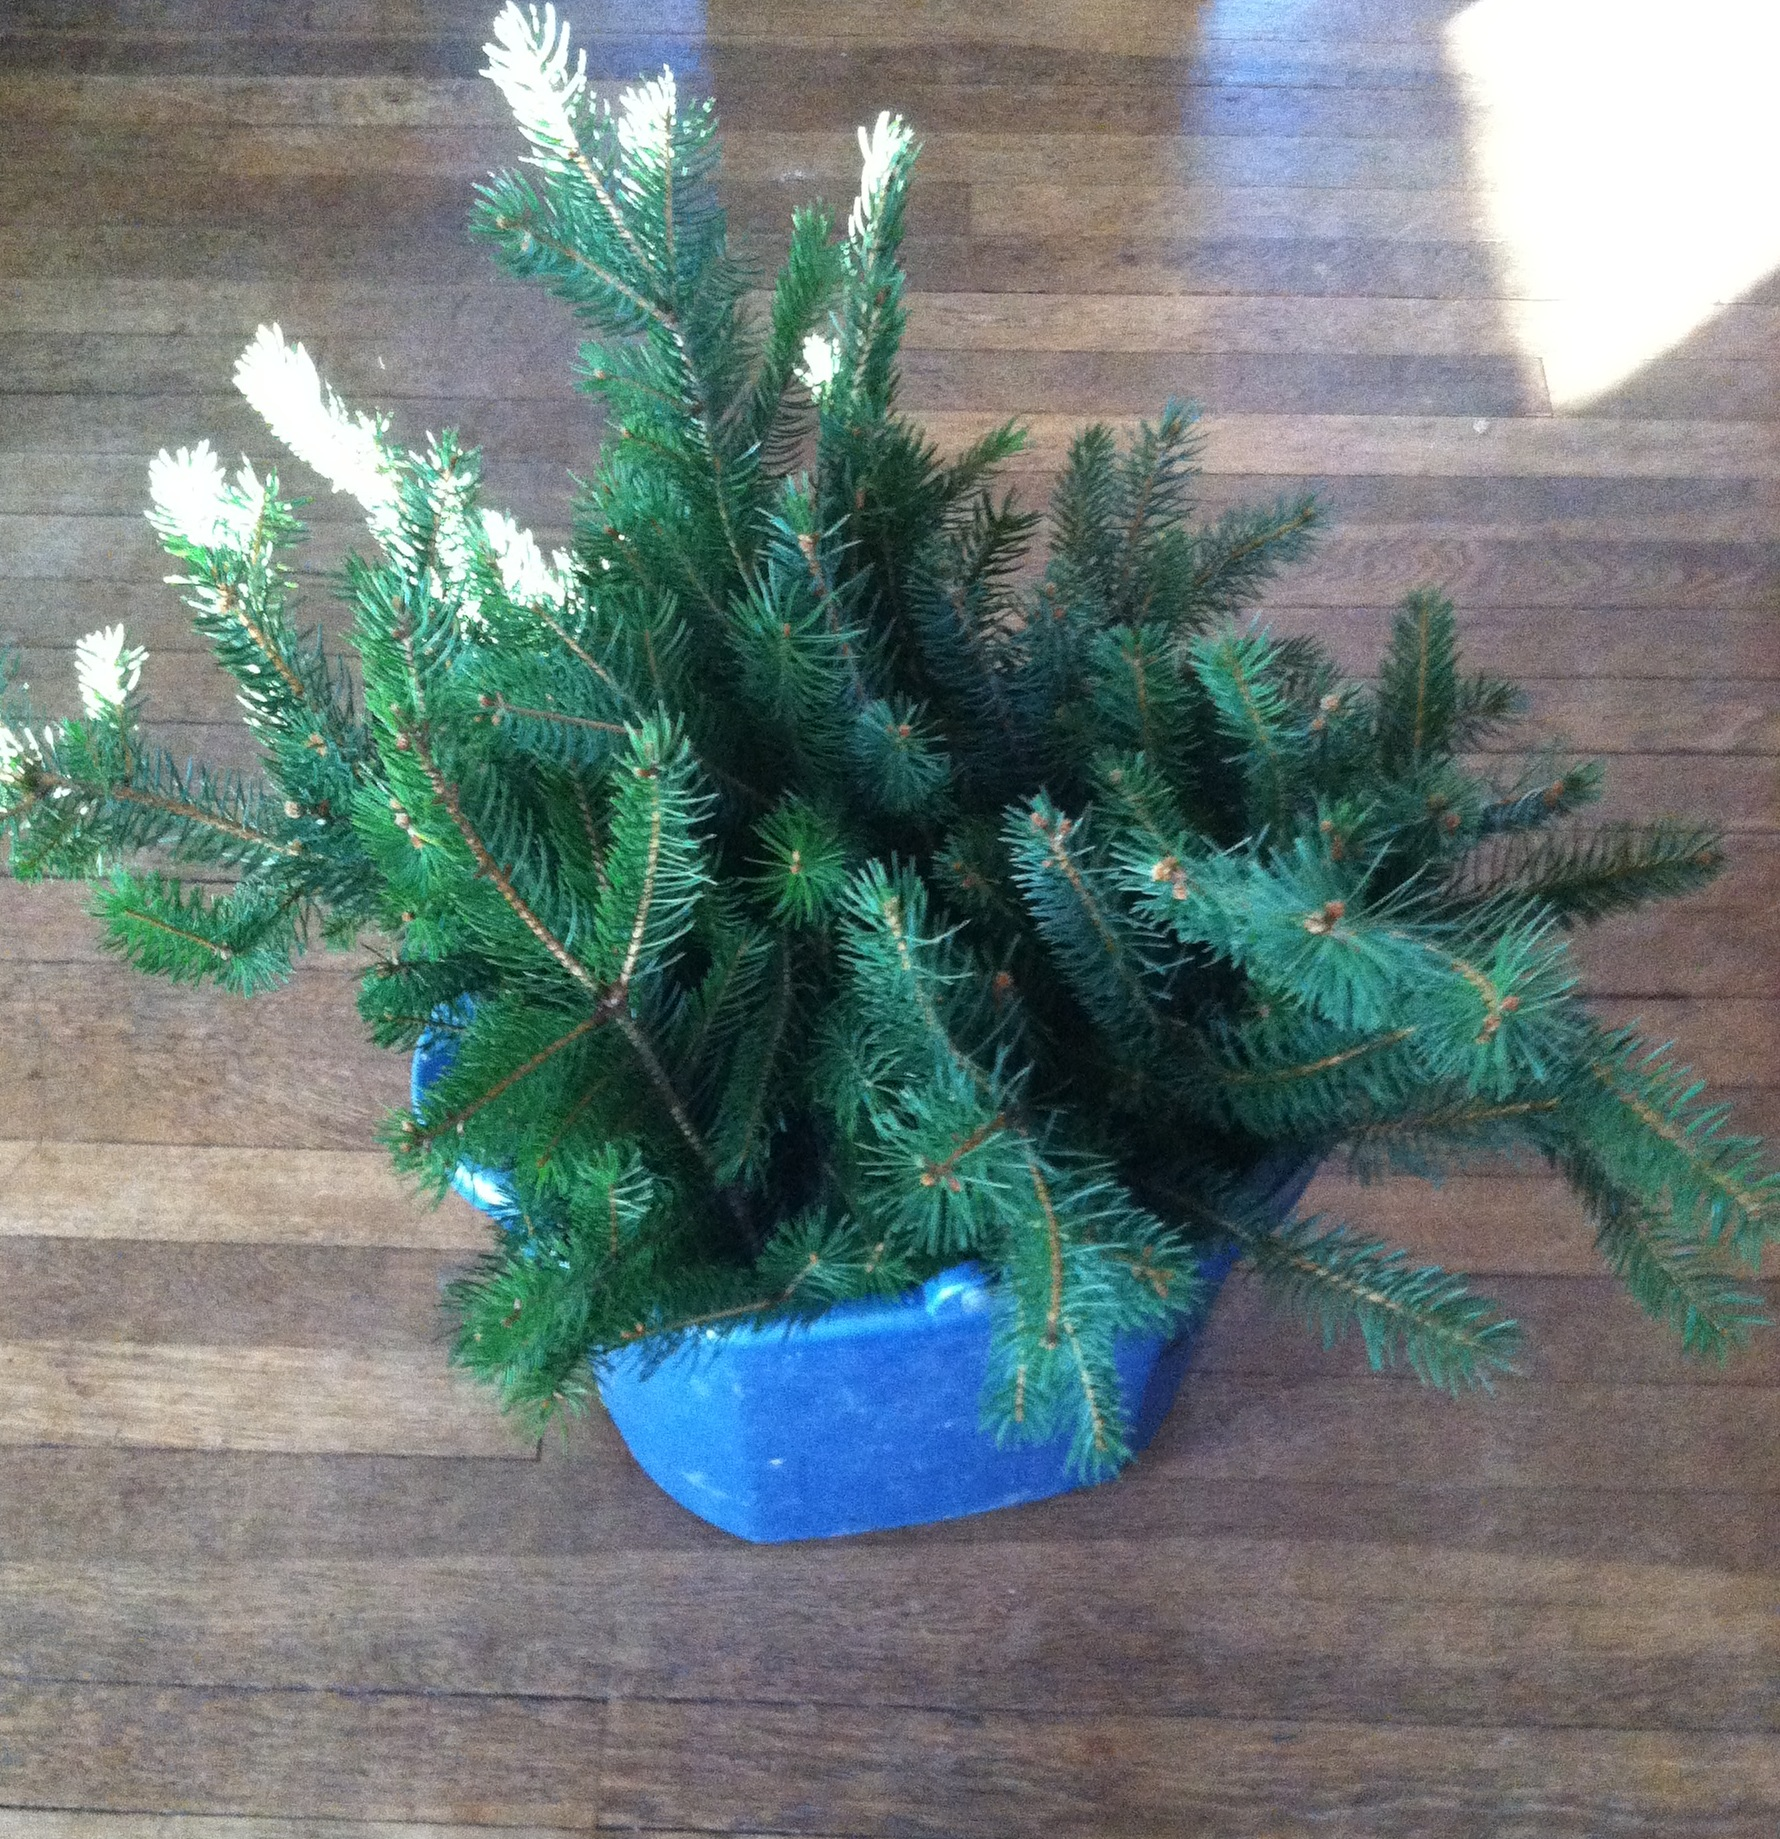 Christmas Tree Life Extender: Preserved Fresh Evergreen Branches For Christmas